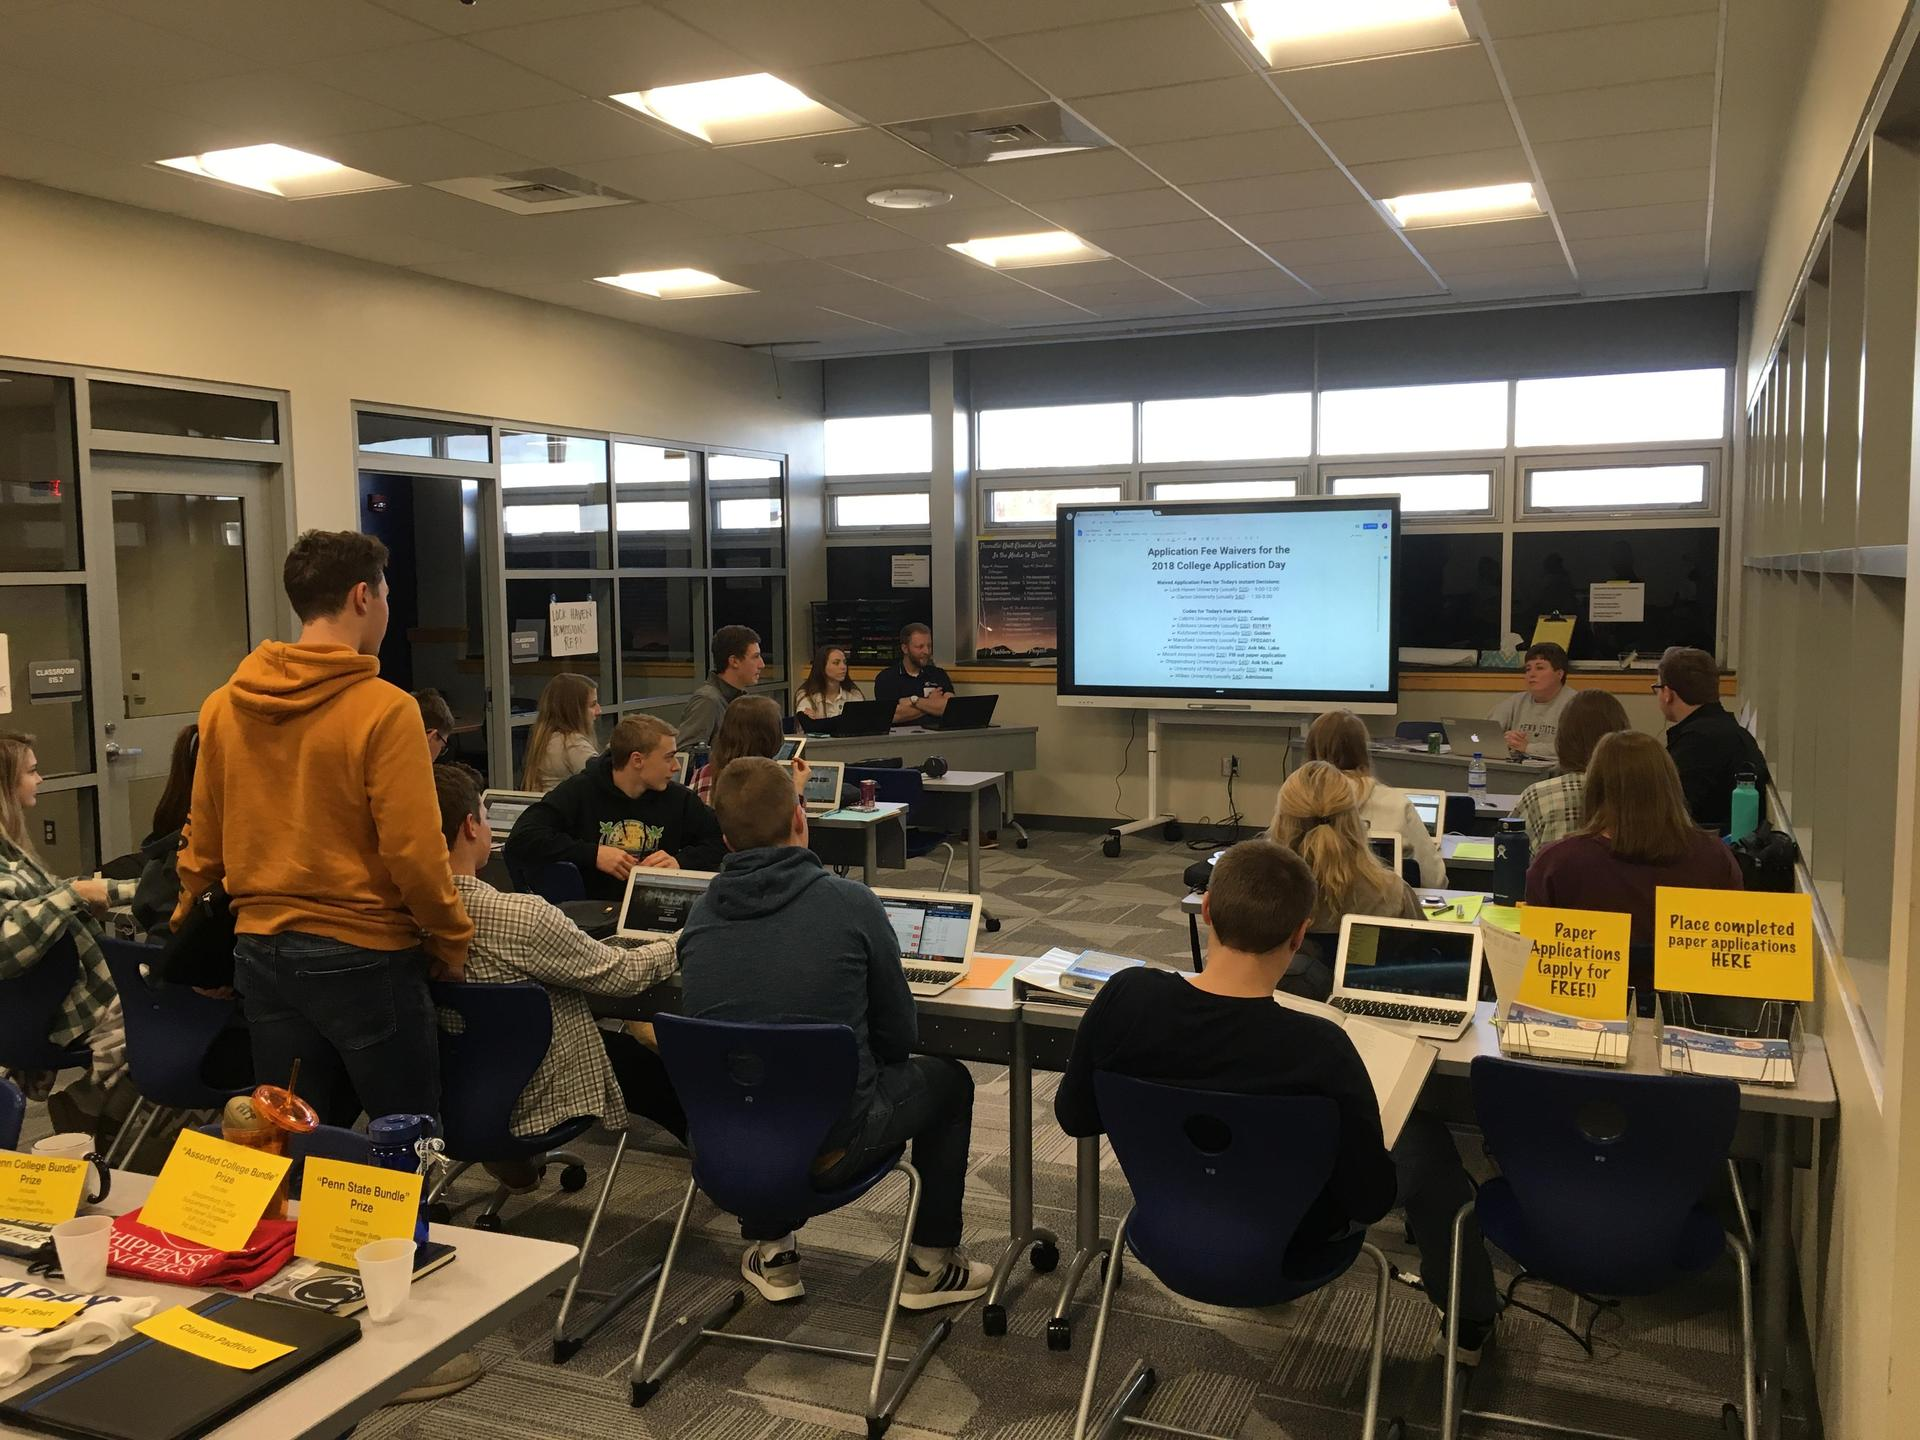 students working on college applications